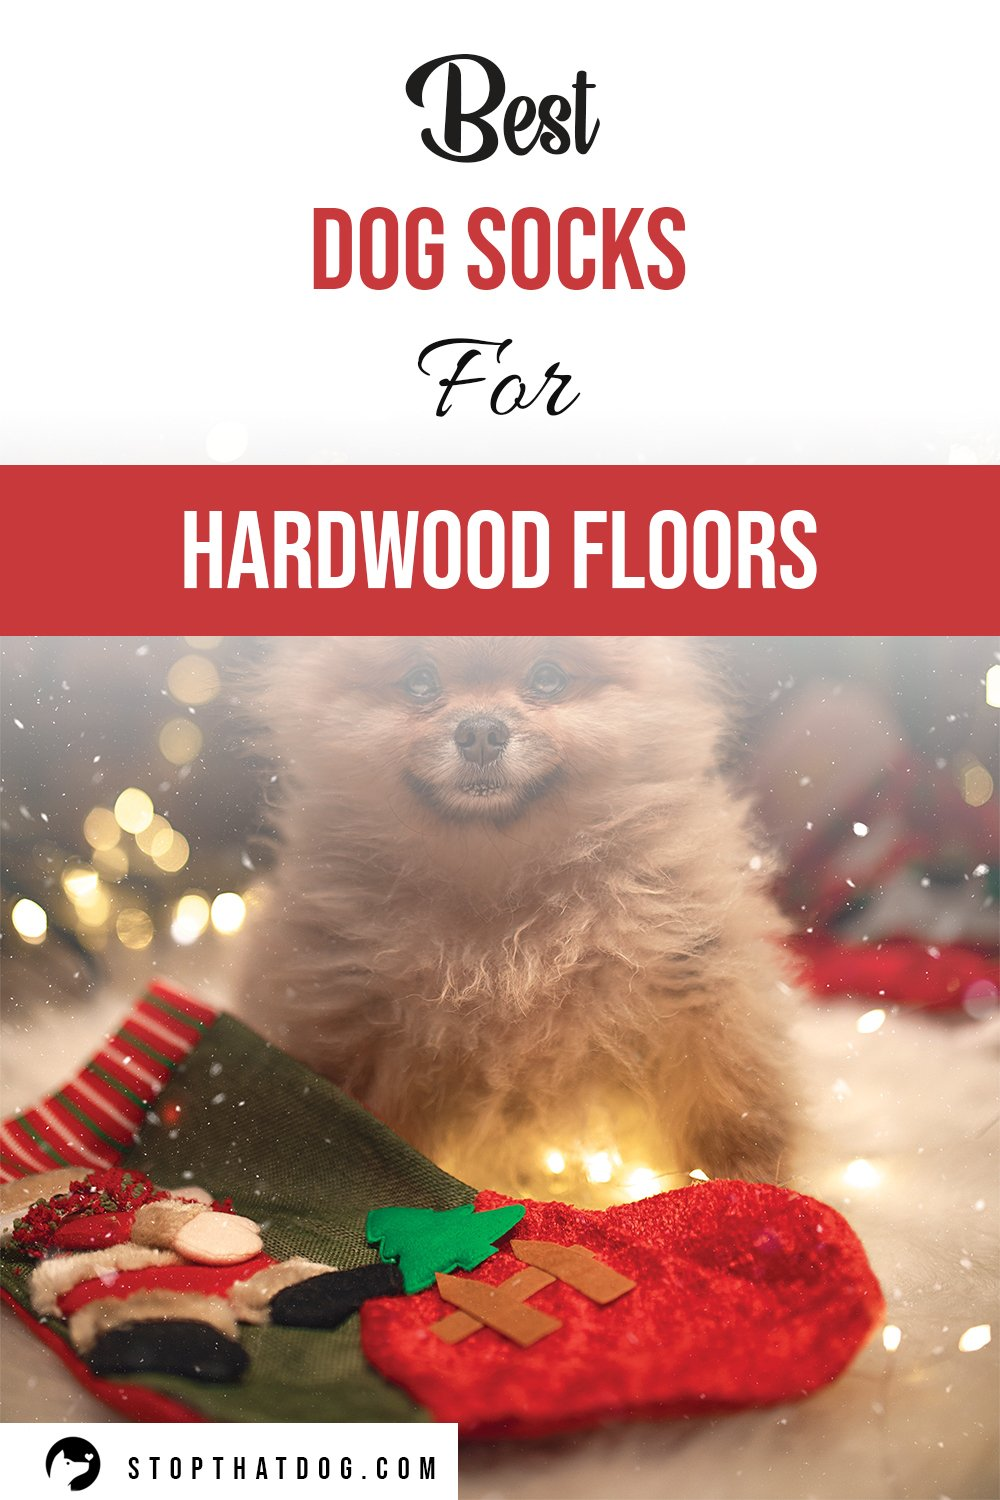 Looking to buy some socks for your dog? If so, our guide reveals many of the top options on the market. Stop your dog slipping on hardwood floors.